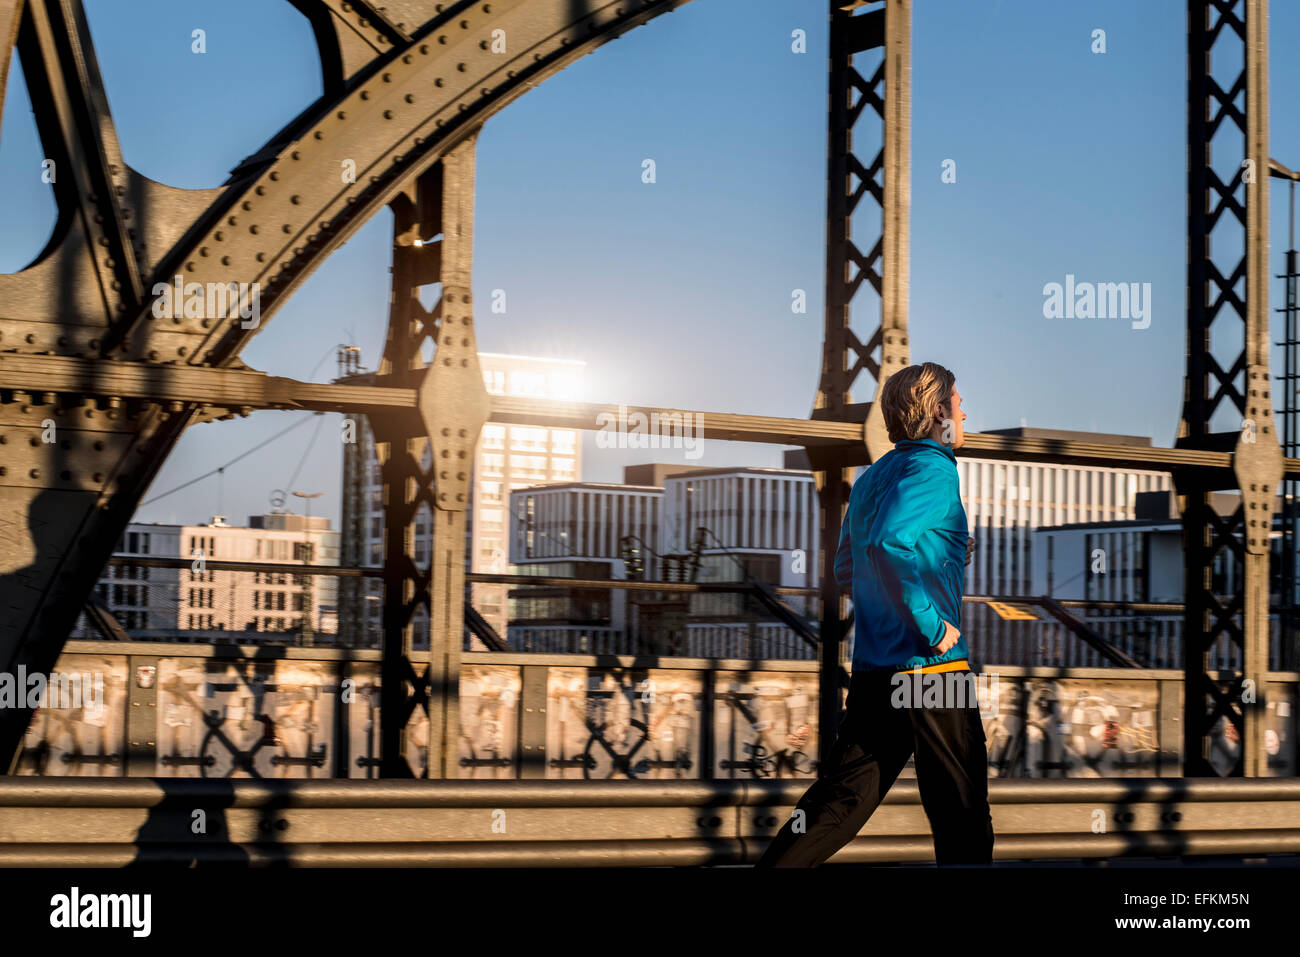 Man jogging on bridge, Munich, Bavaria, Germany - Stock Image